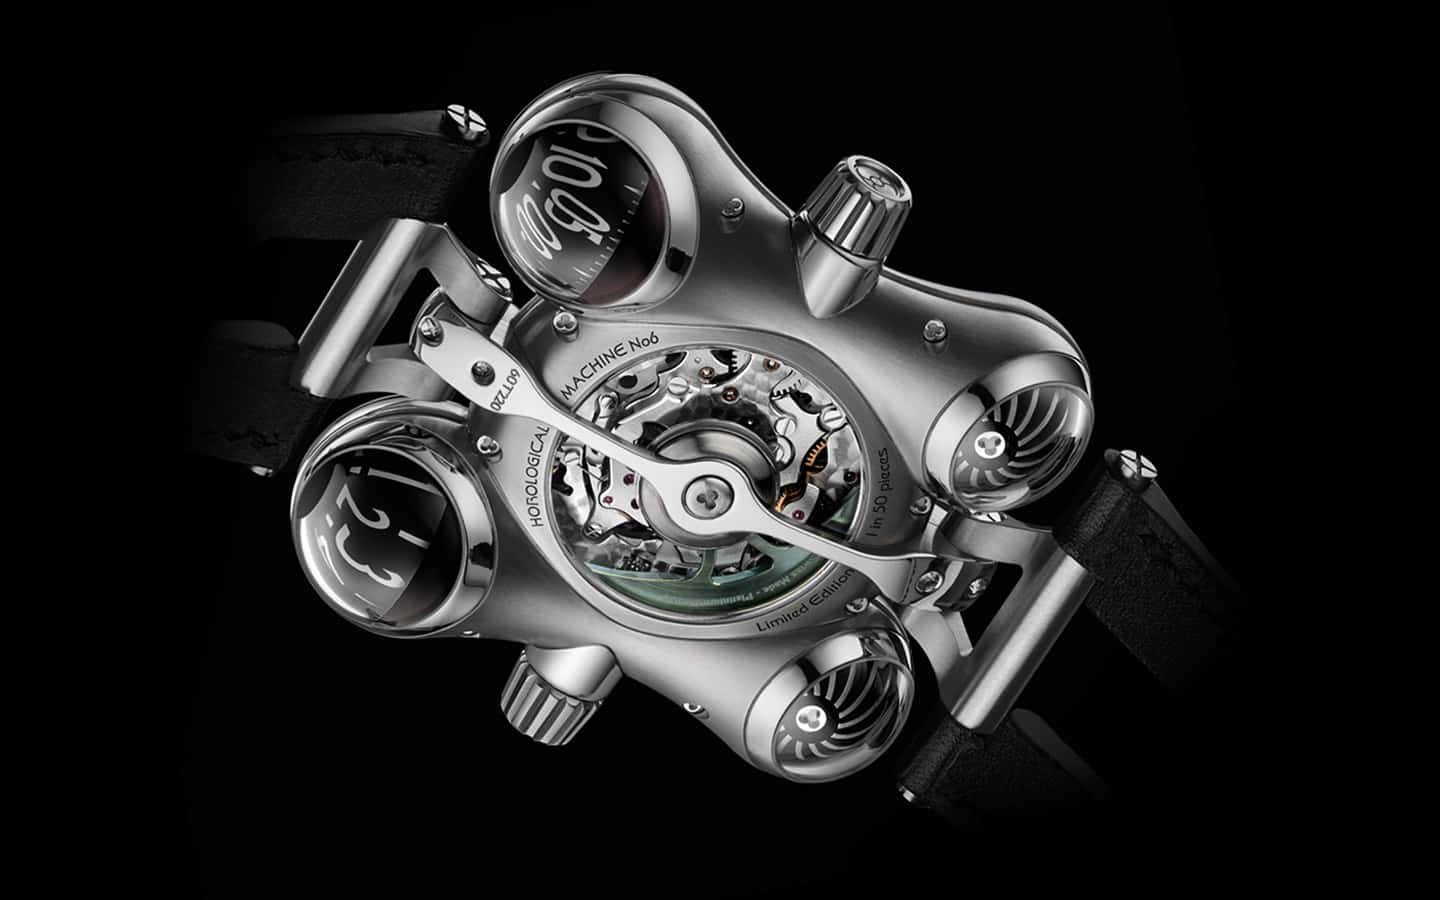 MB&F Horological Machine No.6 (HM6) Space Pirate Watch Mechanism